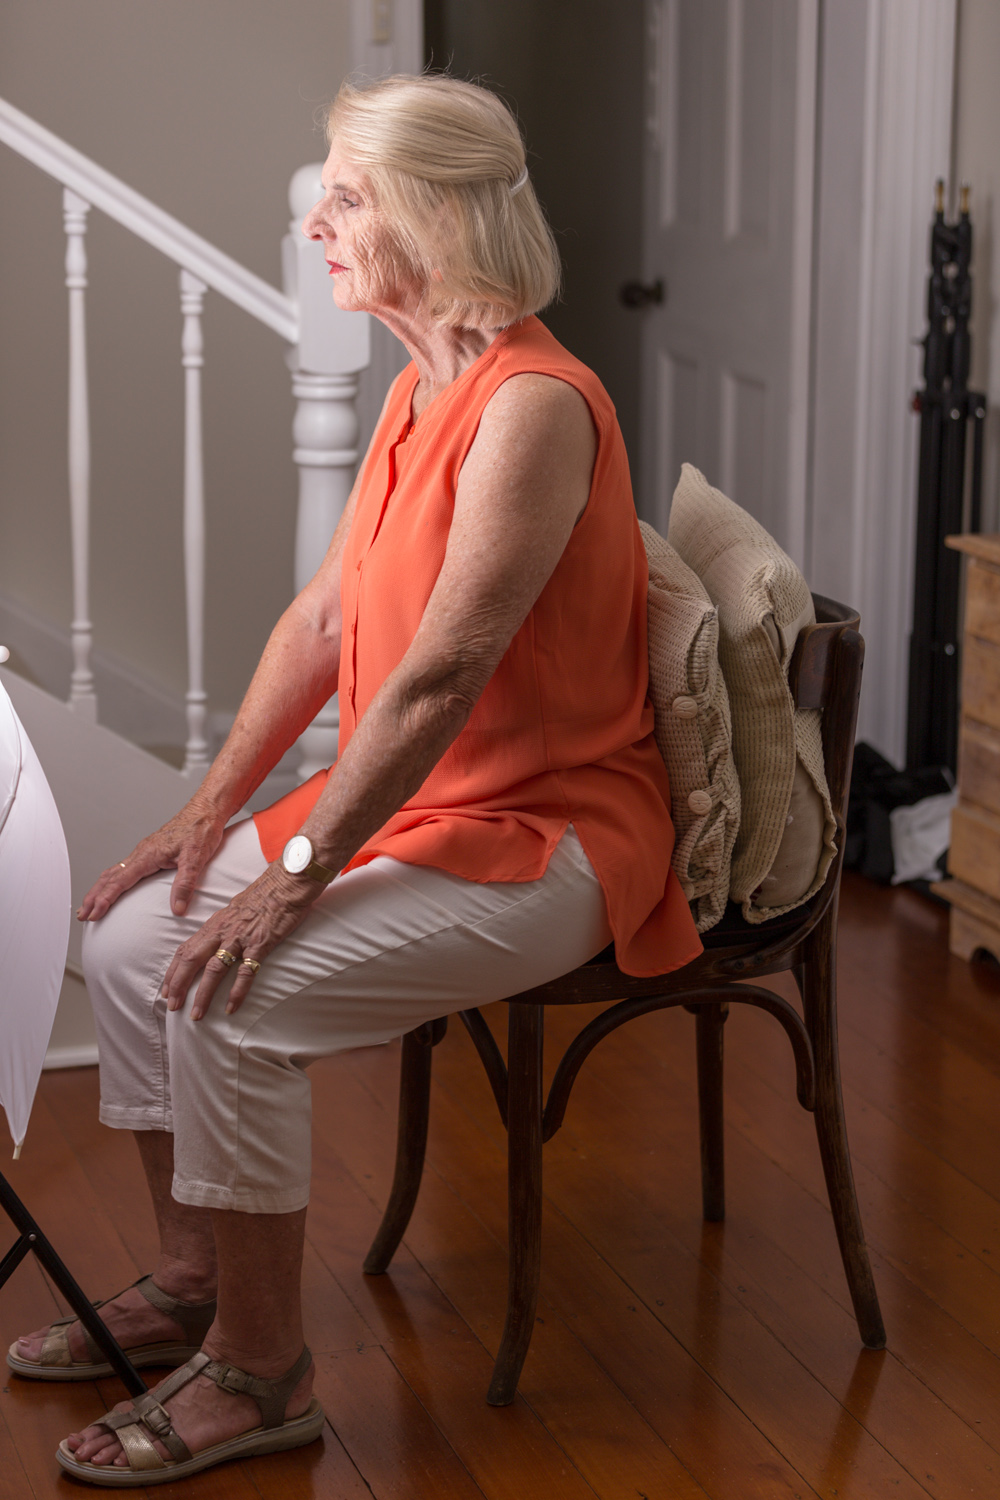 Image: Move your subject as close to the edge of the chair as is safe while supporting their back. C...